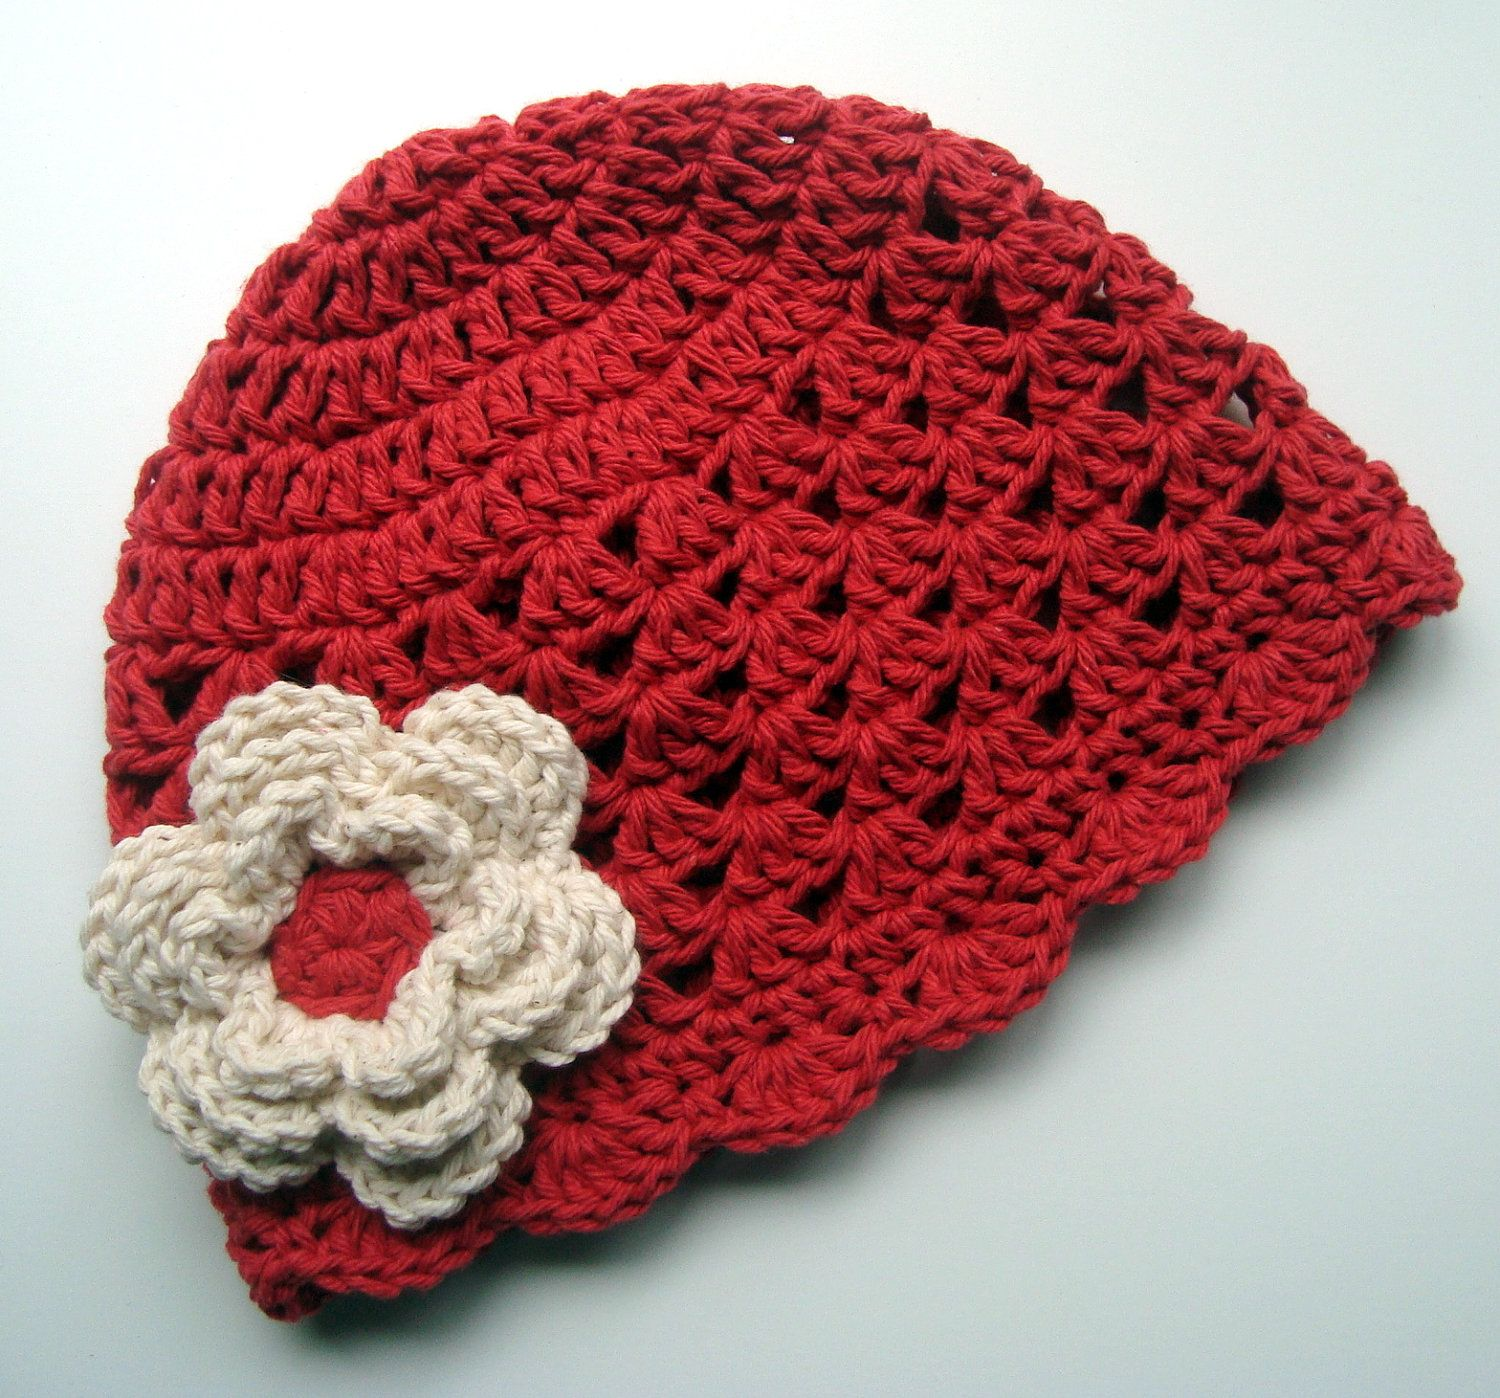 Girls Crochet Scalloped Baby Beanie HatCountry Red and by Karenisa, $18.00